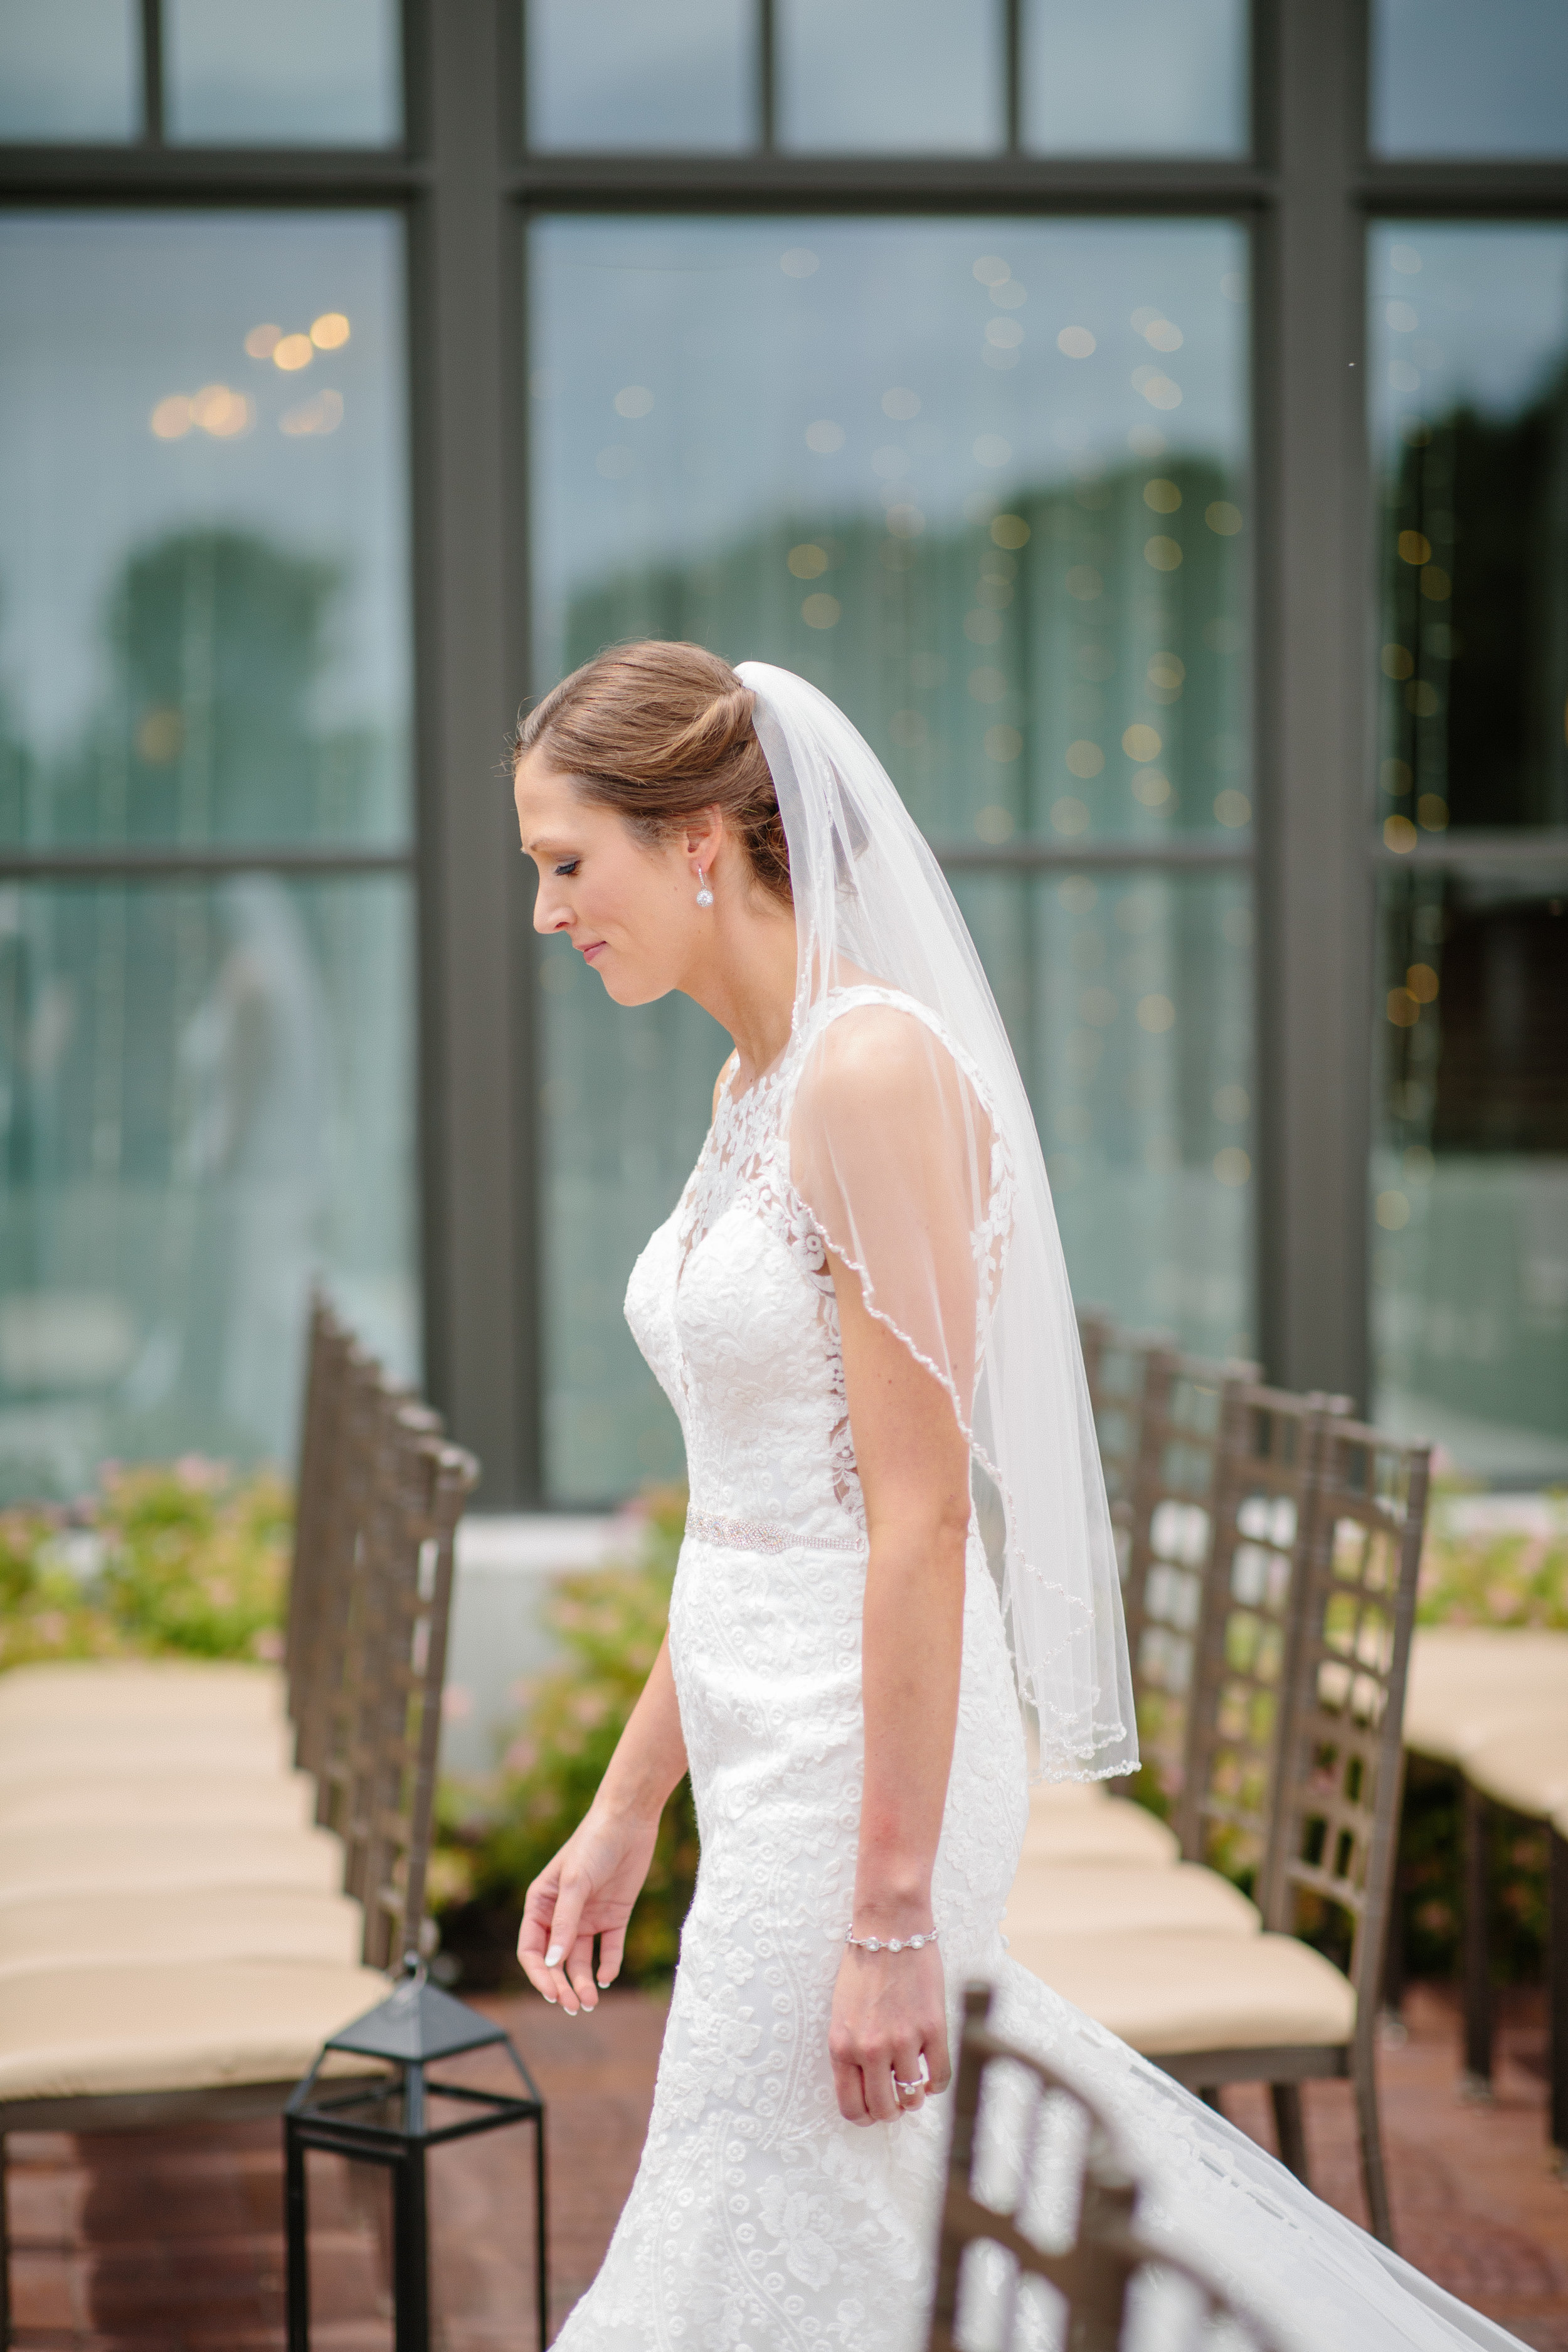 Pederson-wedding-143.nicole_kyle_west_des_moines_iowa_wedding_photographers_21.jpg